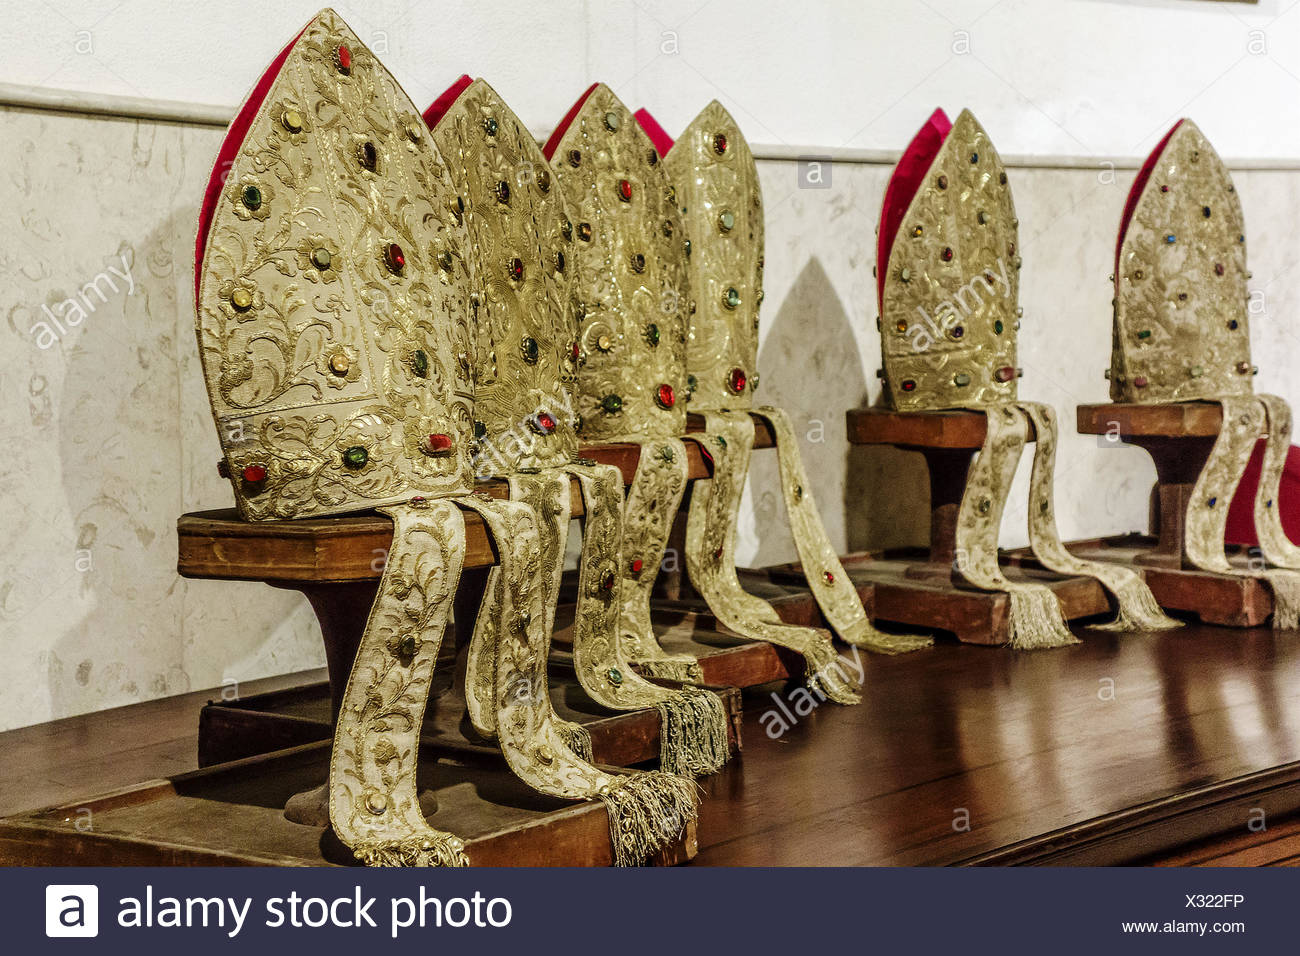 Mitres Stock Photos & Mitres Stock Images - Alamy